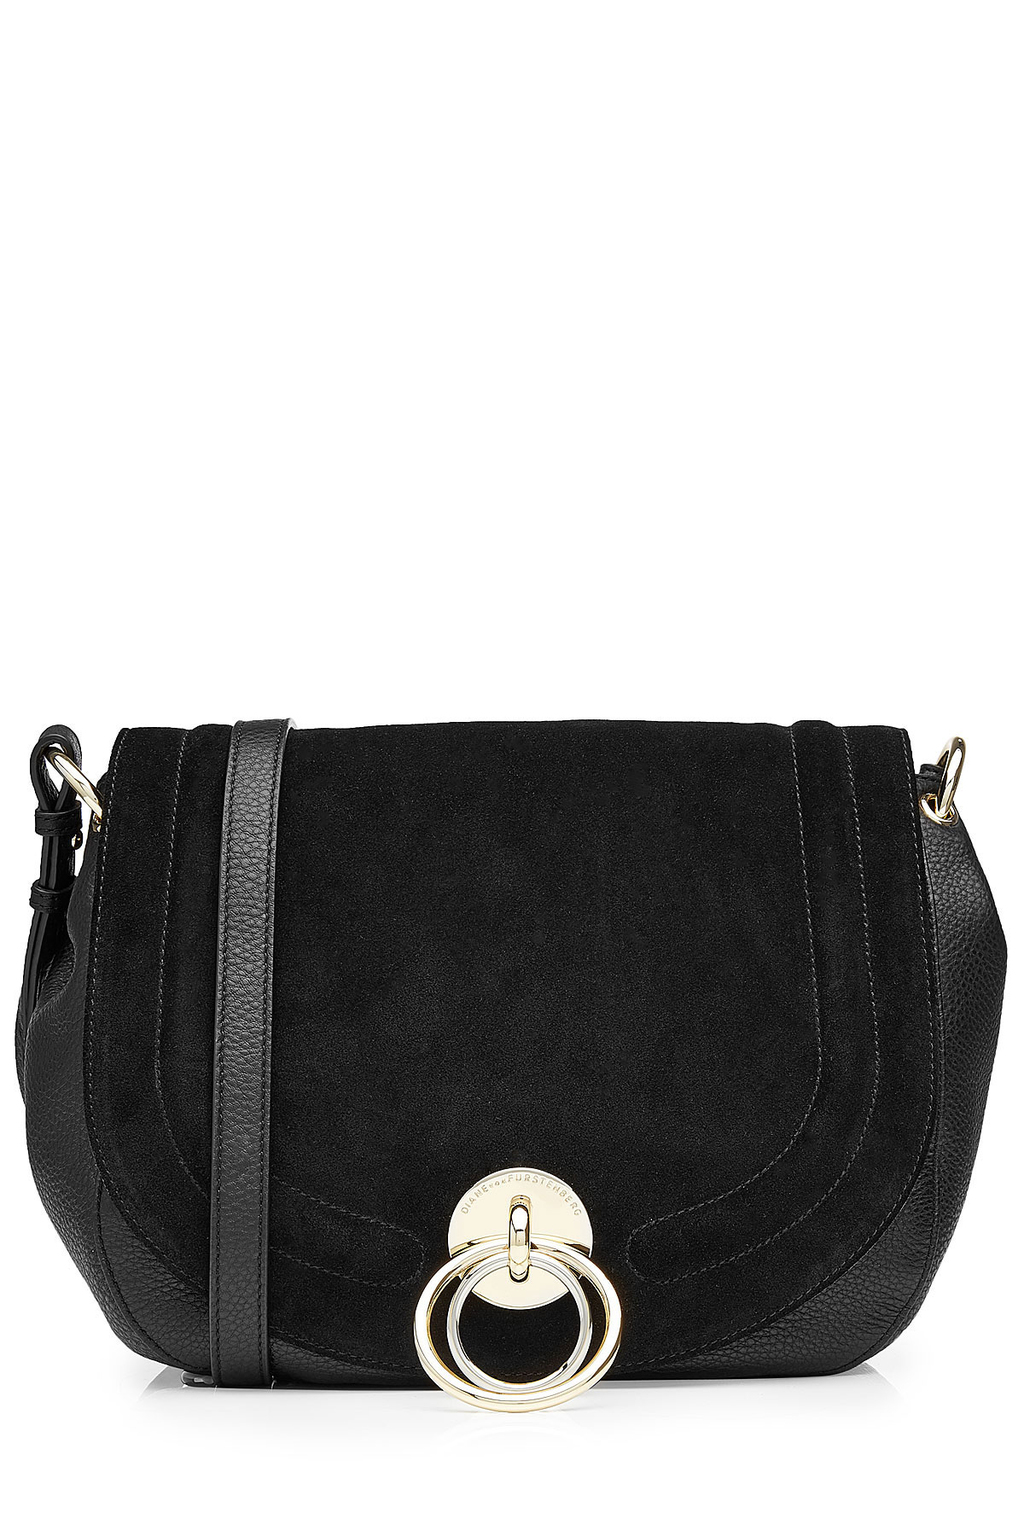 Suede And Leather Shoulder Bag Black - predominant colour: black; occasions: casual, creative work; type of pattern: standard; style: shoulder; length: shoulder (tucks under arm); size: small; material: leather; pattern: plain; finish: plain; wardrobe: investment; season: a/w 2016